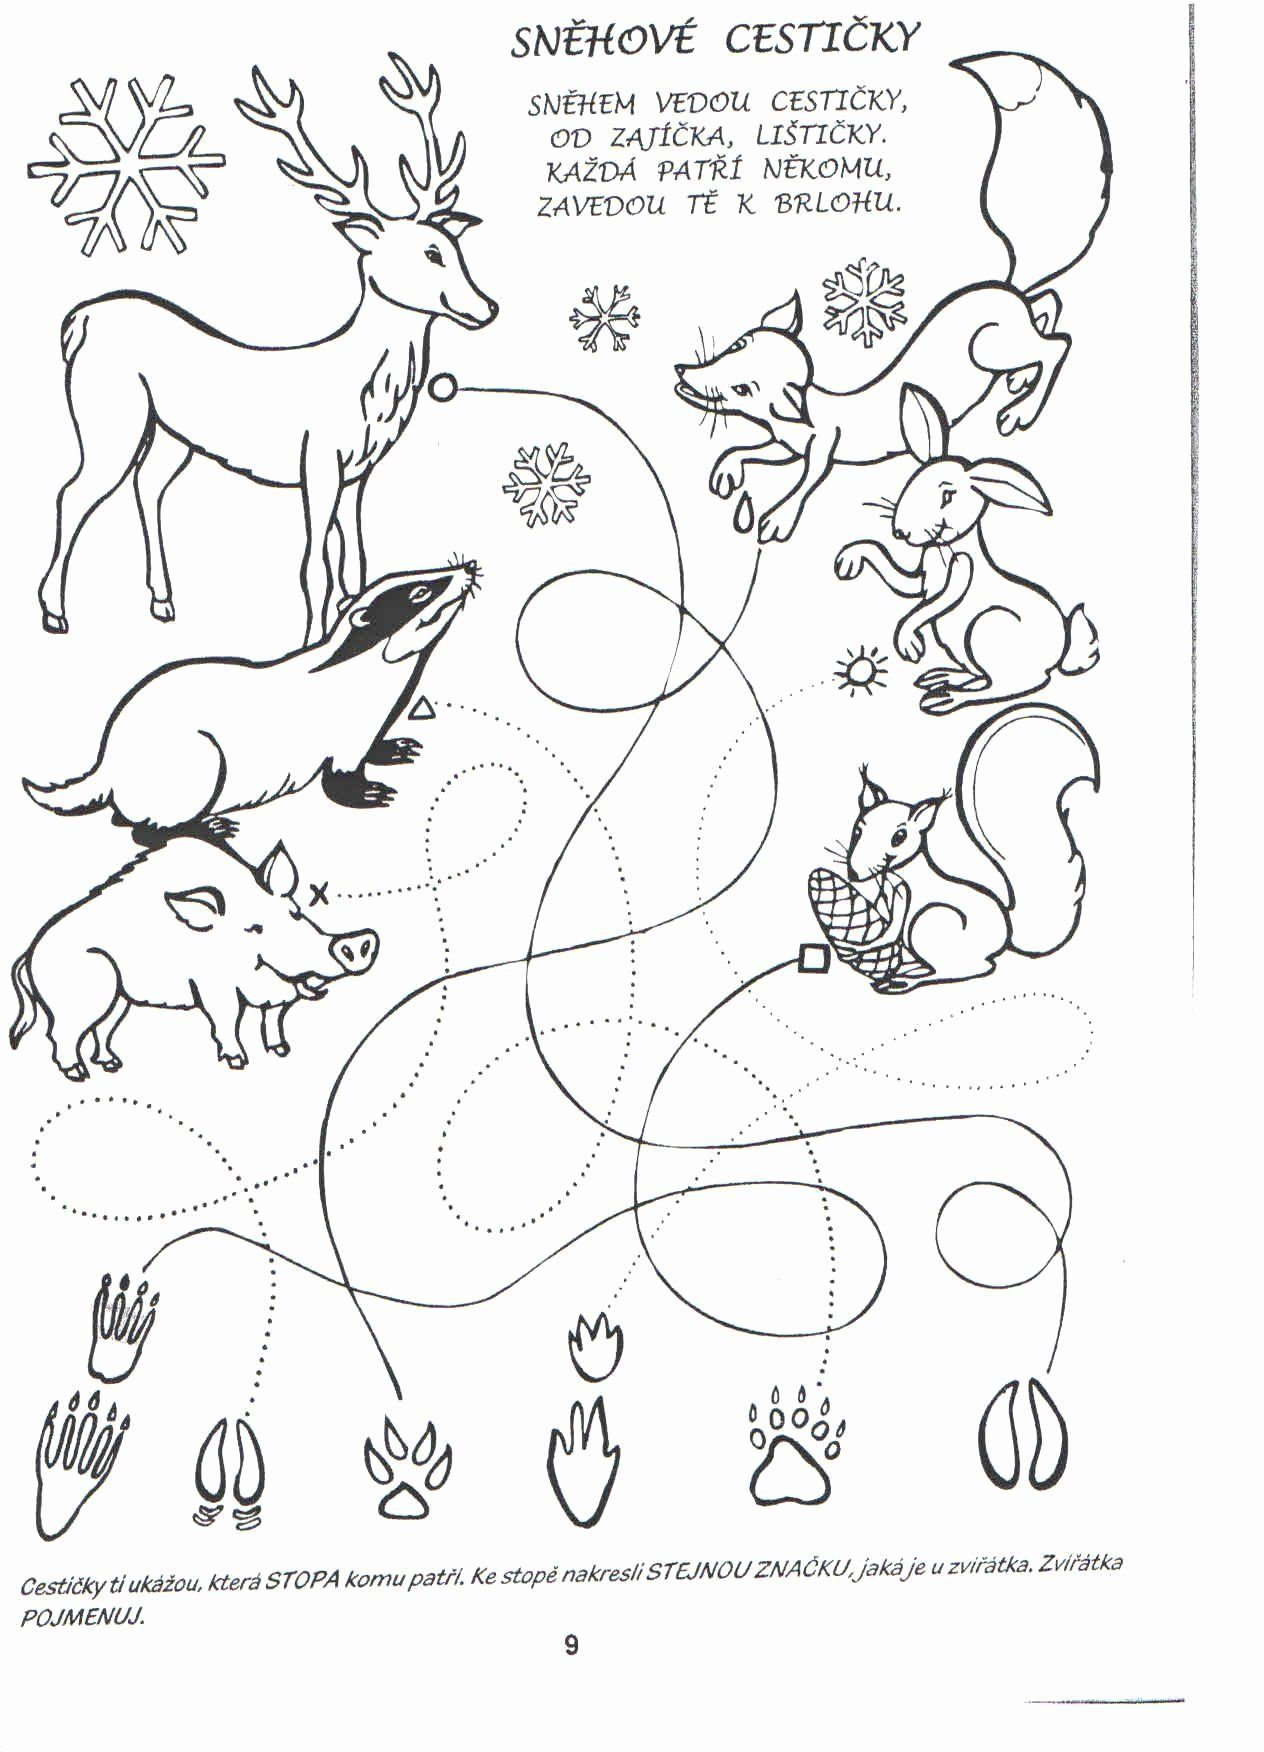 Animal Tracks Coloring Pages Coloring Pages Coloring Pages For Kids Animal Tracks [ 1752 x 1264 Pixel ]